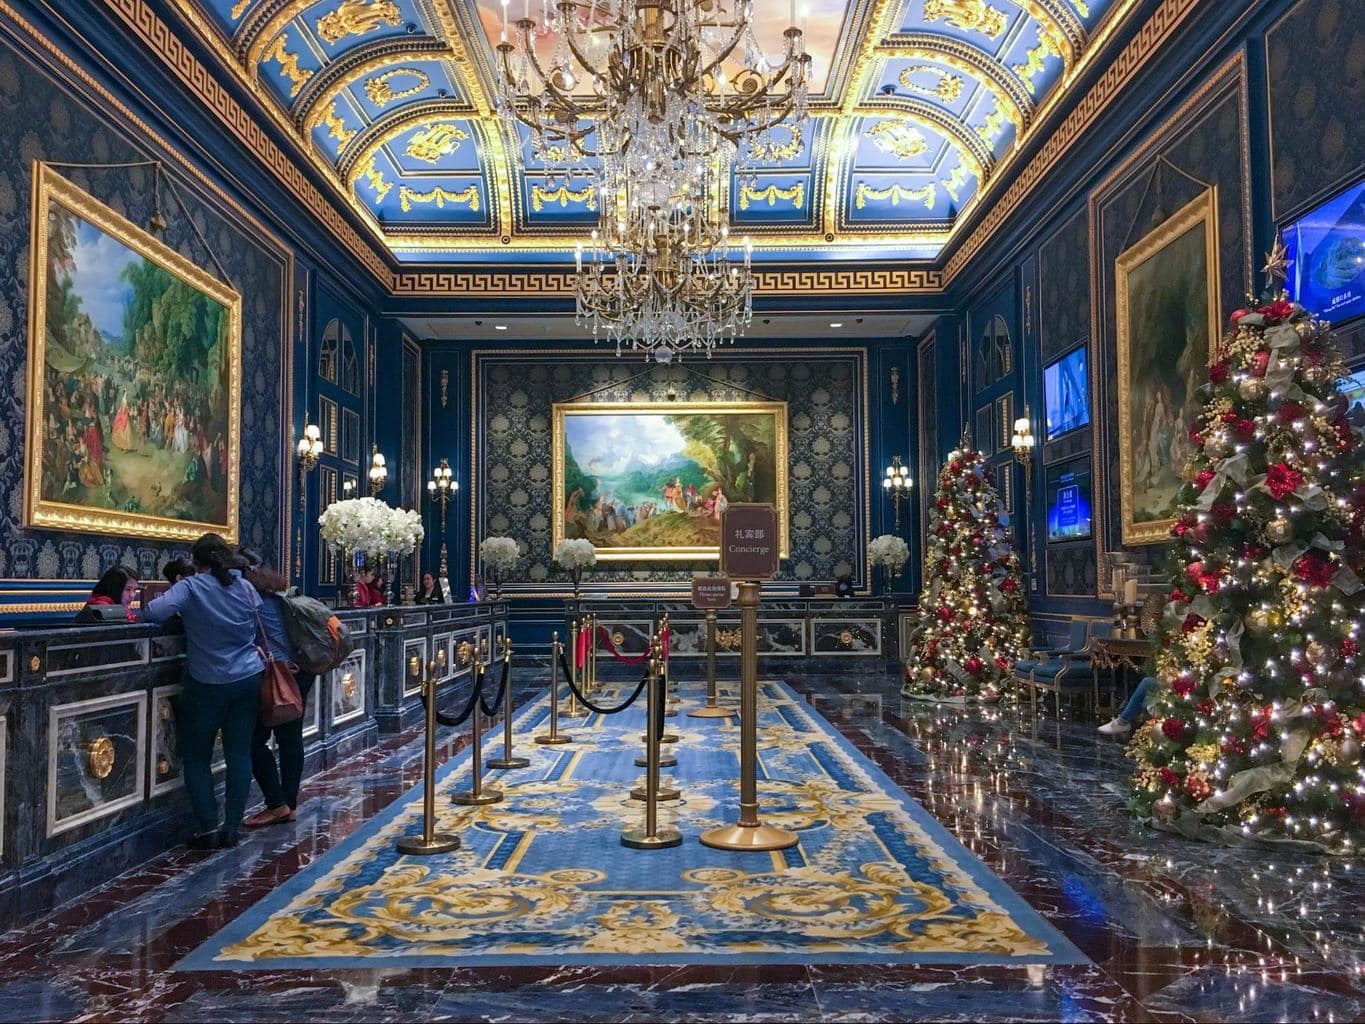 The Parisian Macau Interior